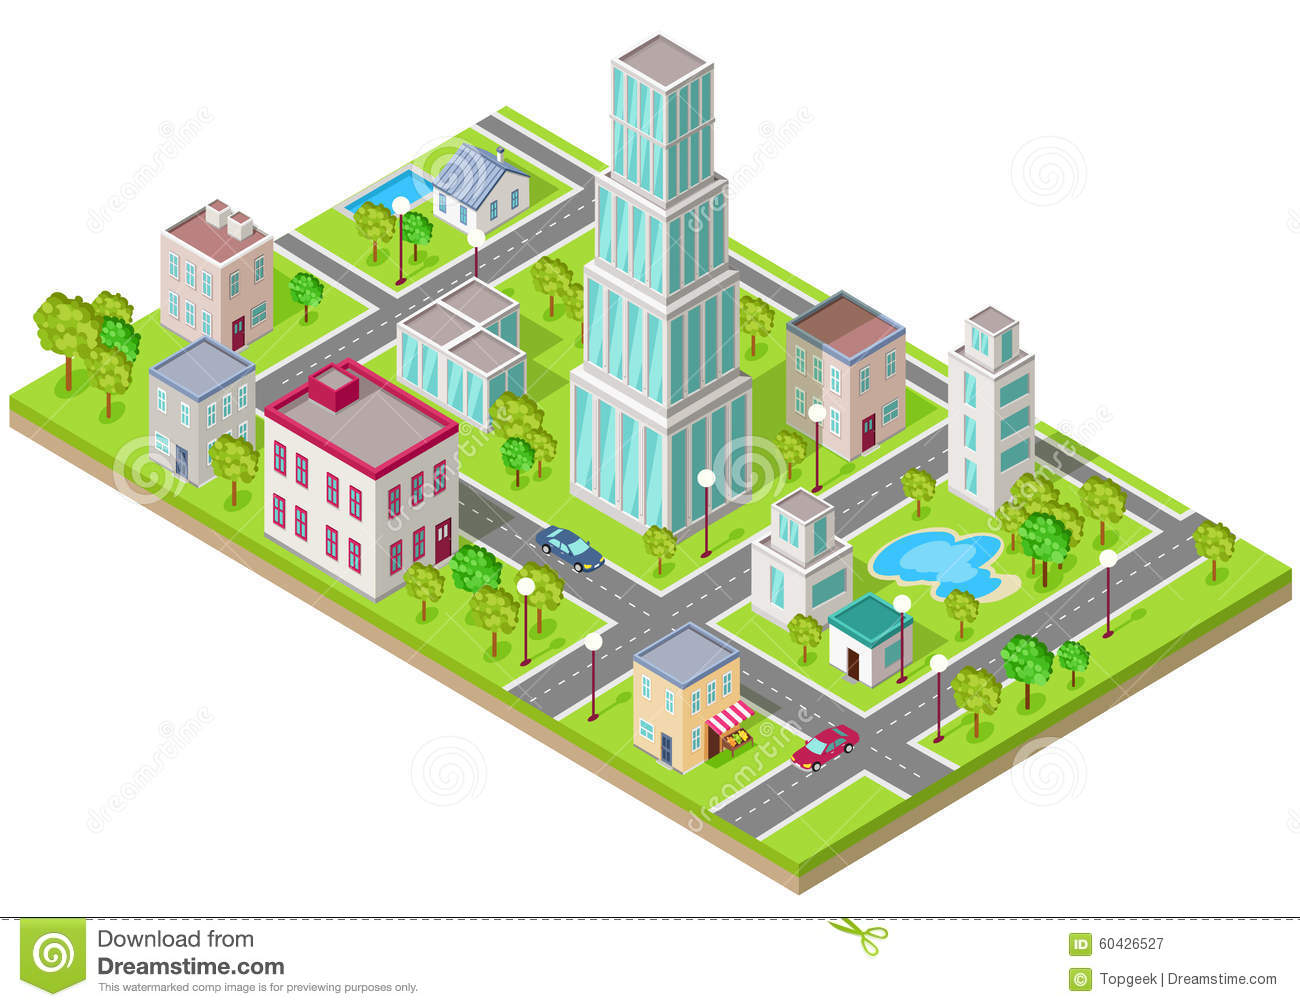 Isometric icon of city flat design stock vector for 3d flat design online